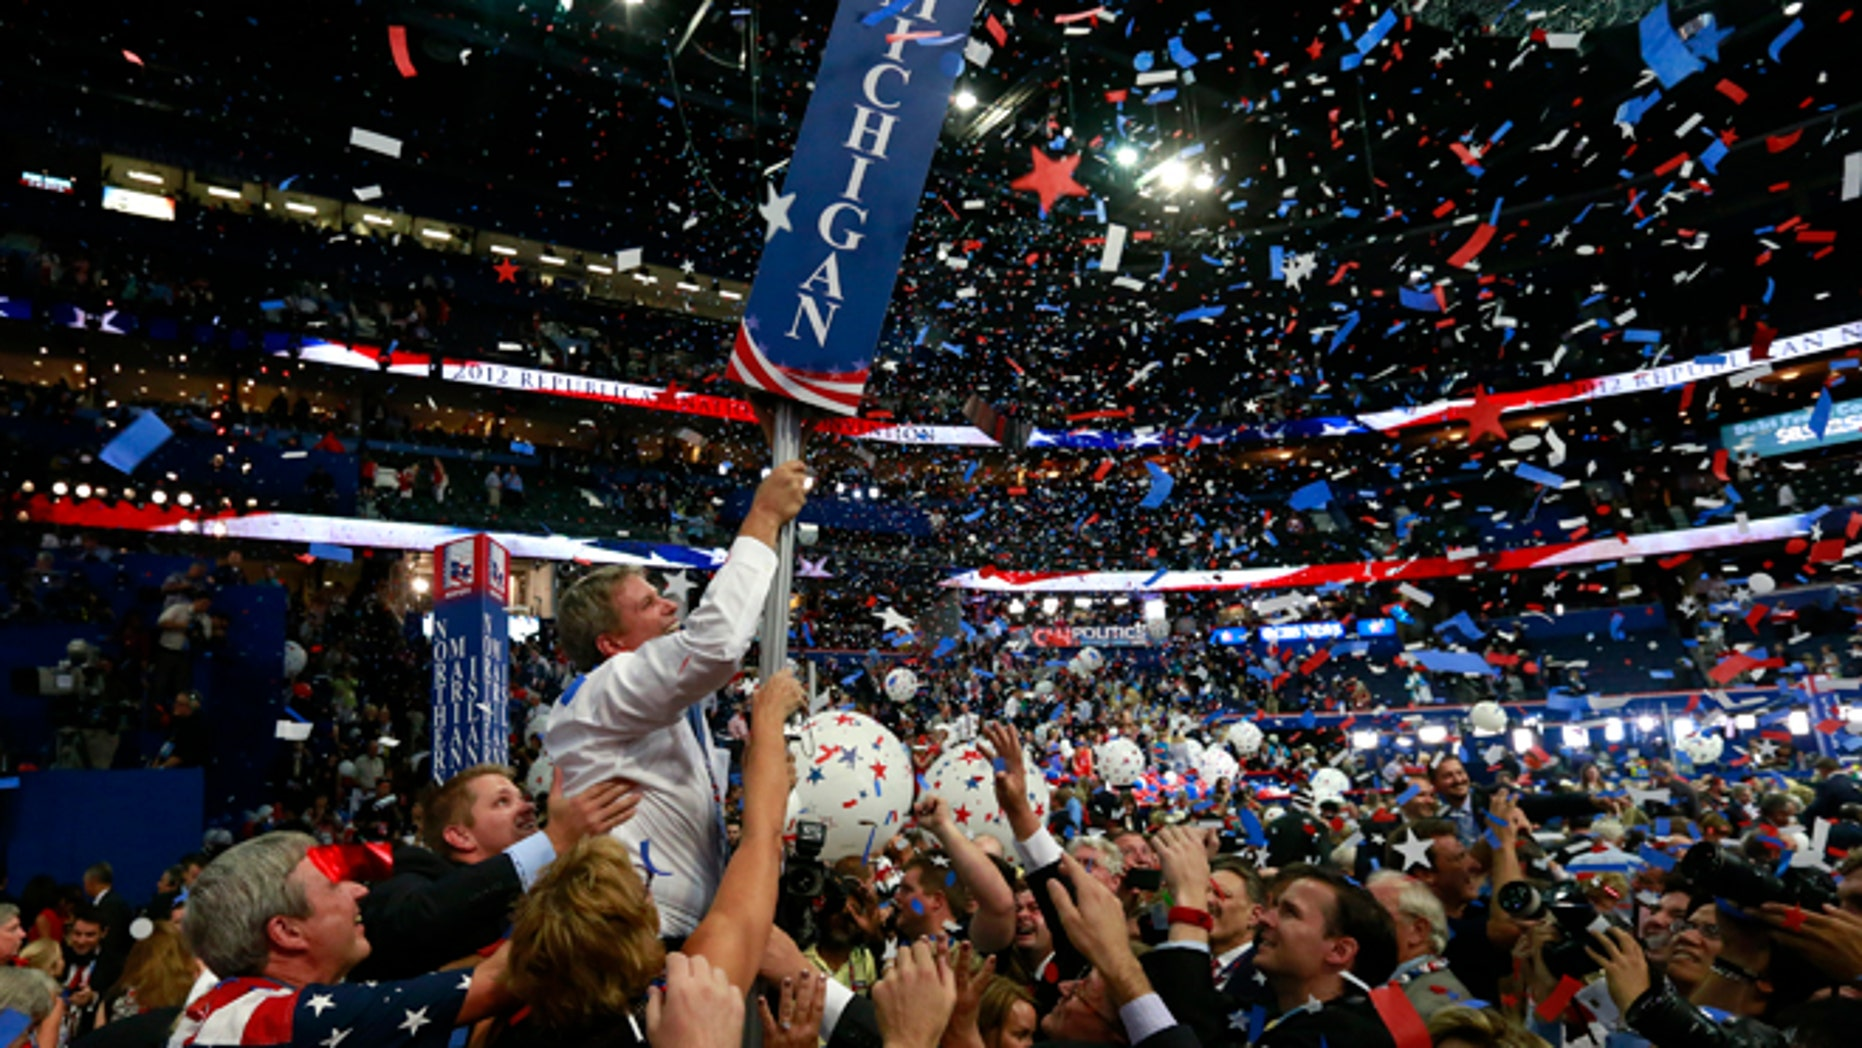 In this Aug. 30, 2012, file photo, Michigan delegates celebrate after Mitt Romney accepts the nomination at the Republican National Convention in Tampa, Florida. (REUTERS)